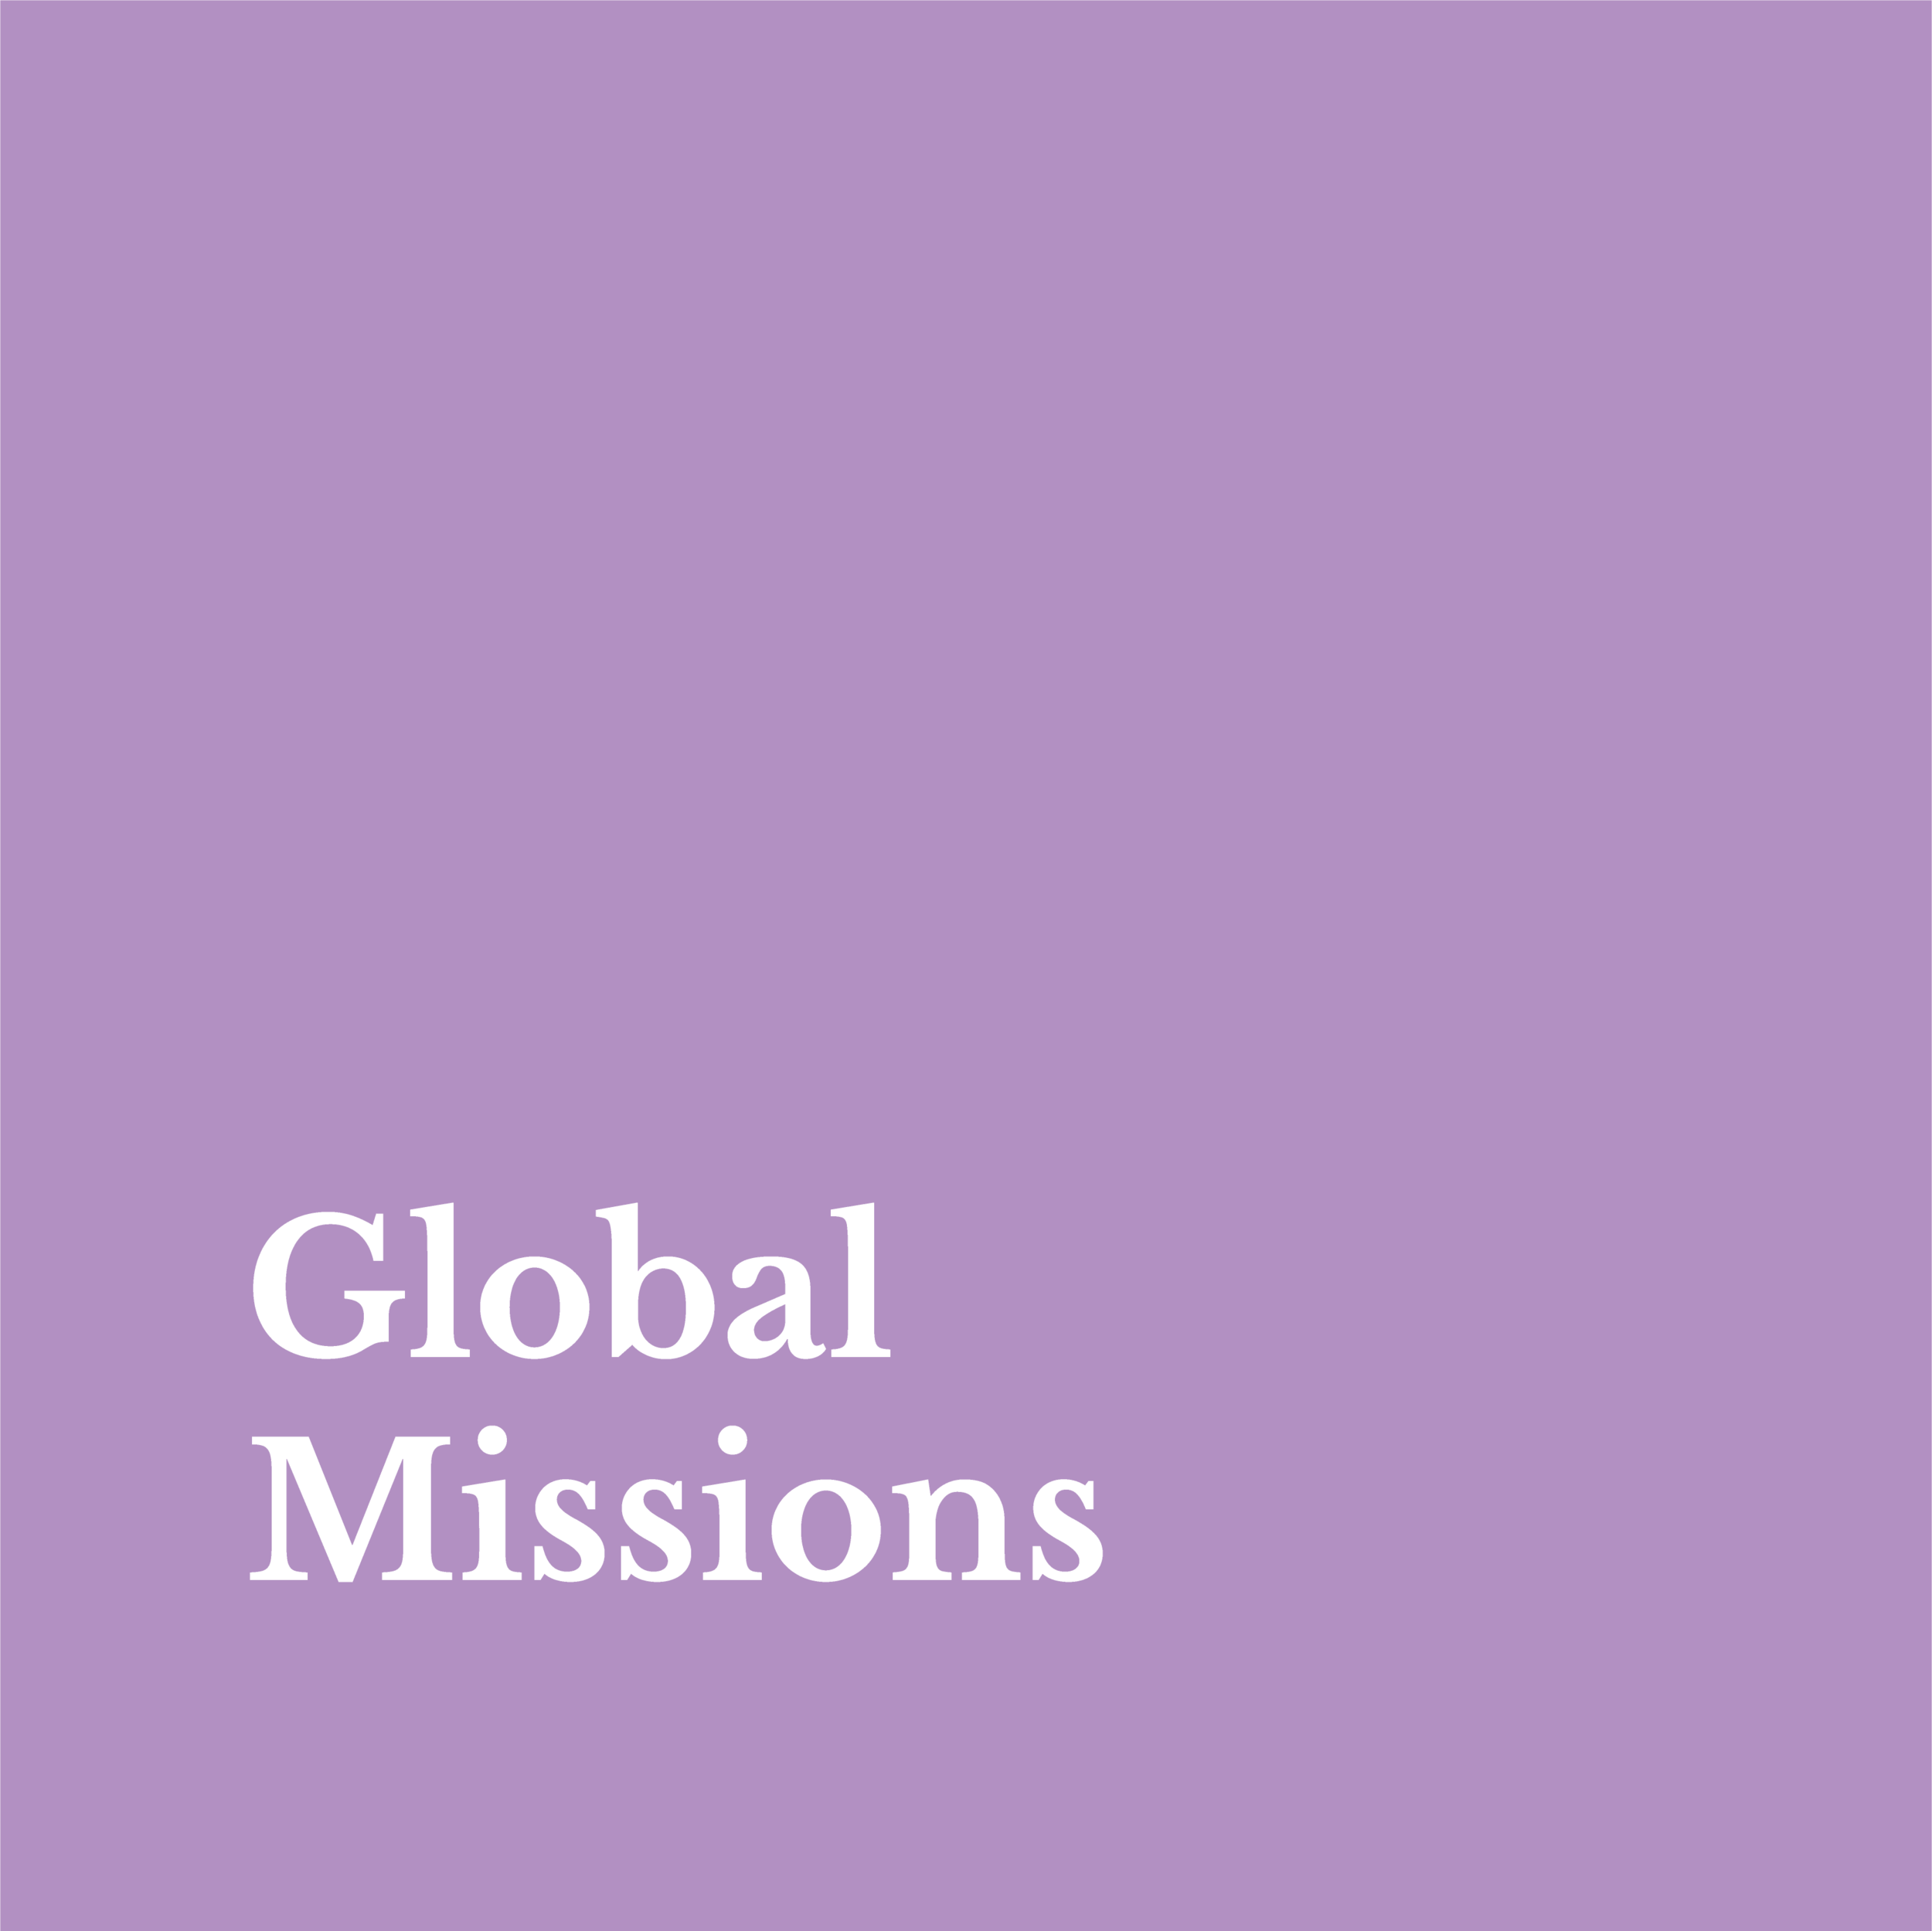 Global Missions.png